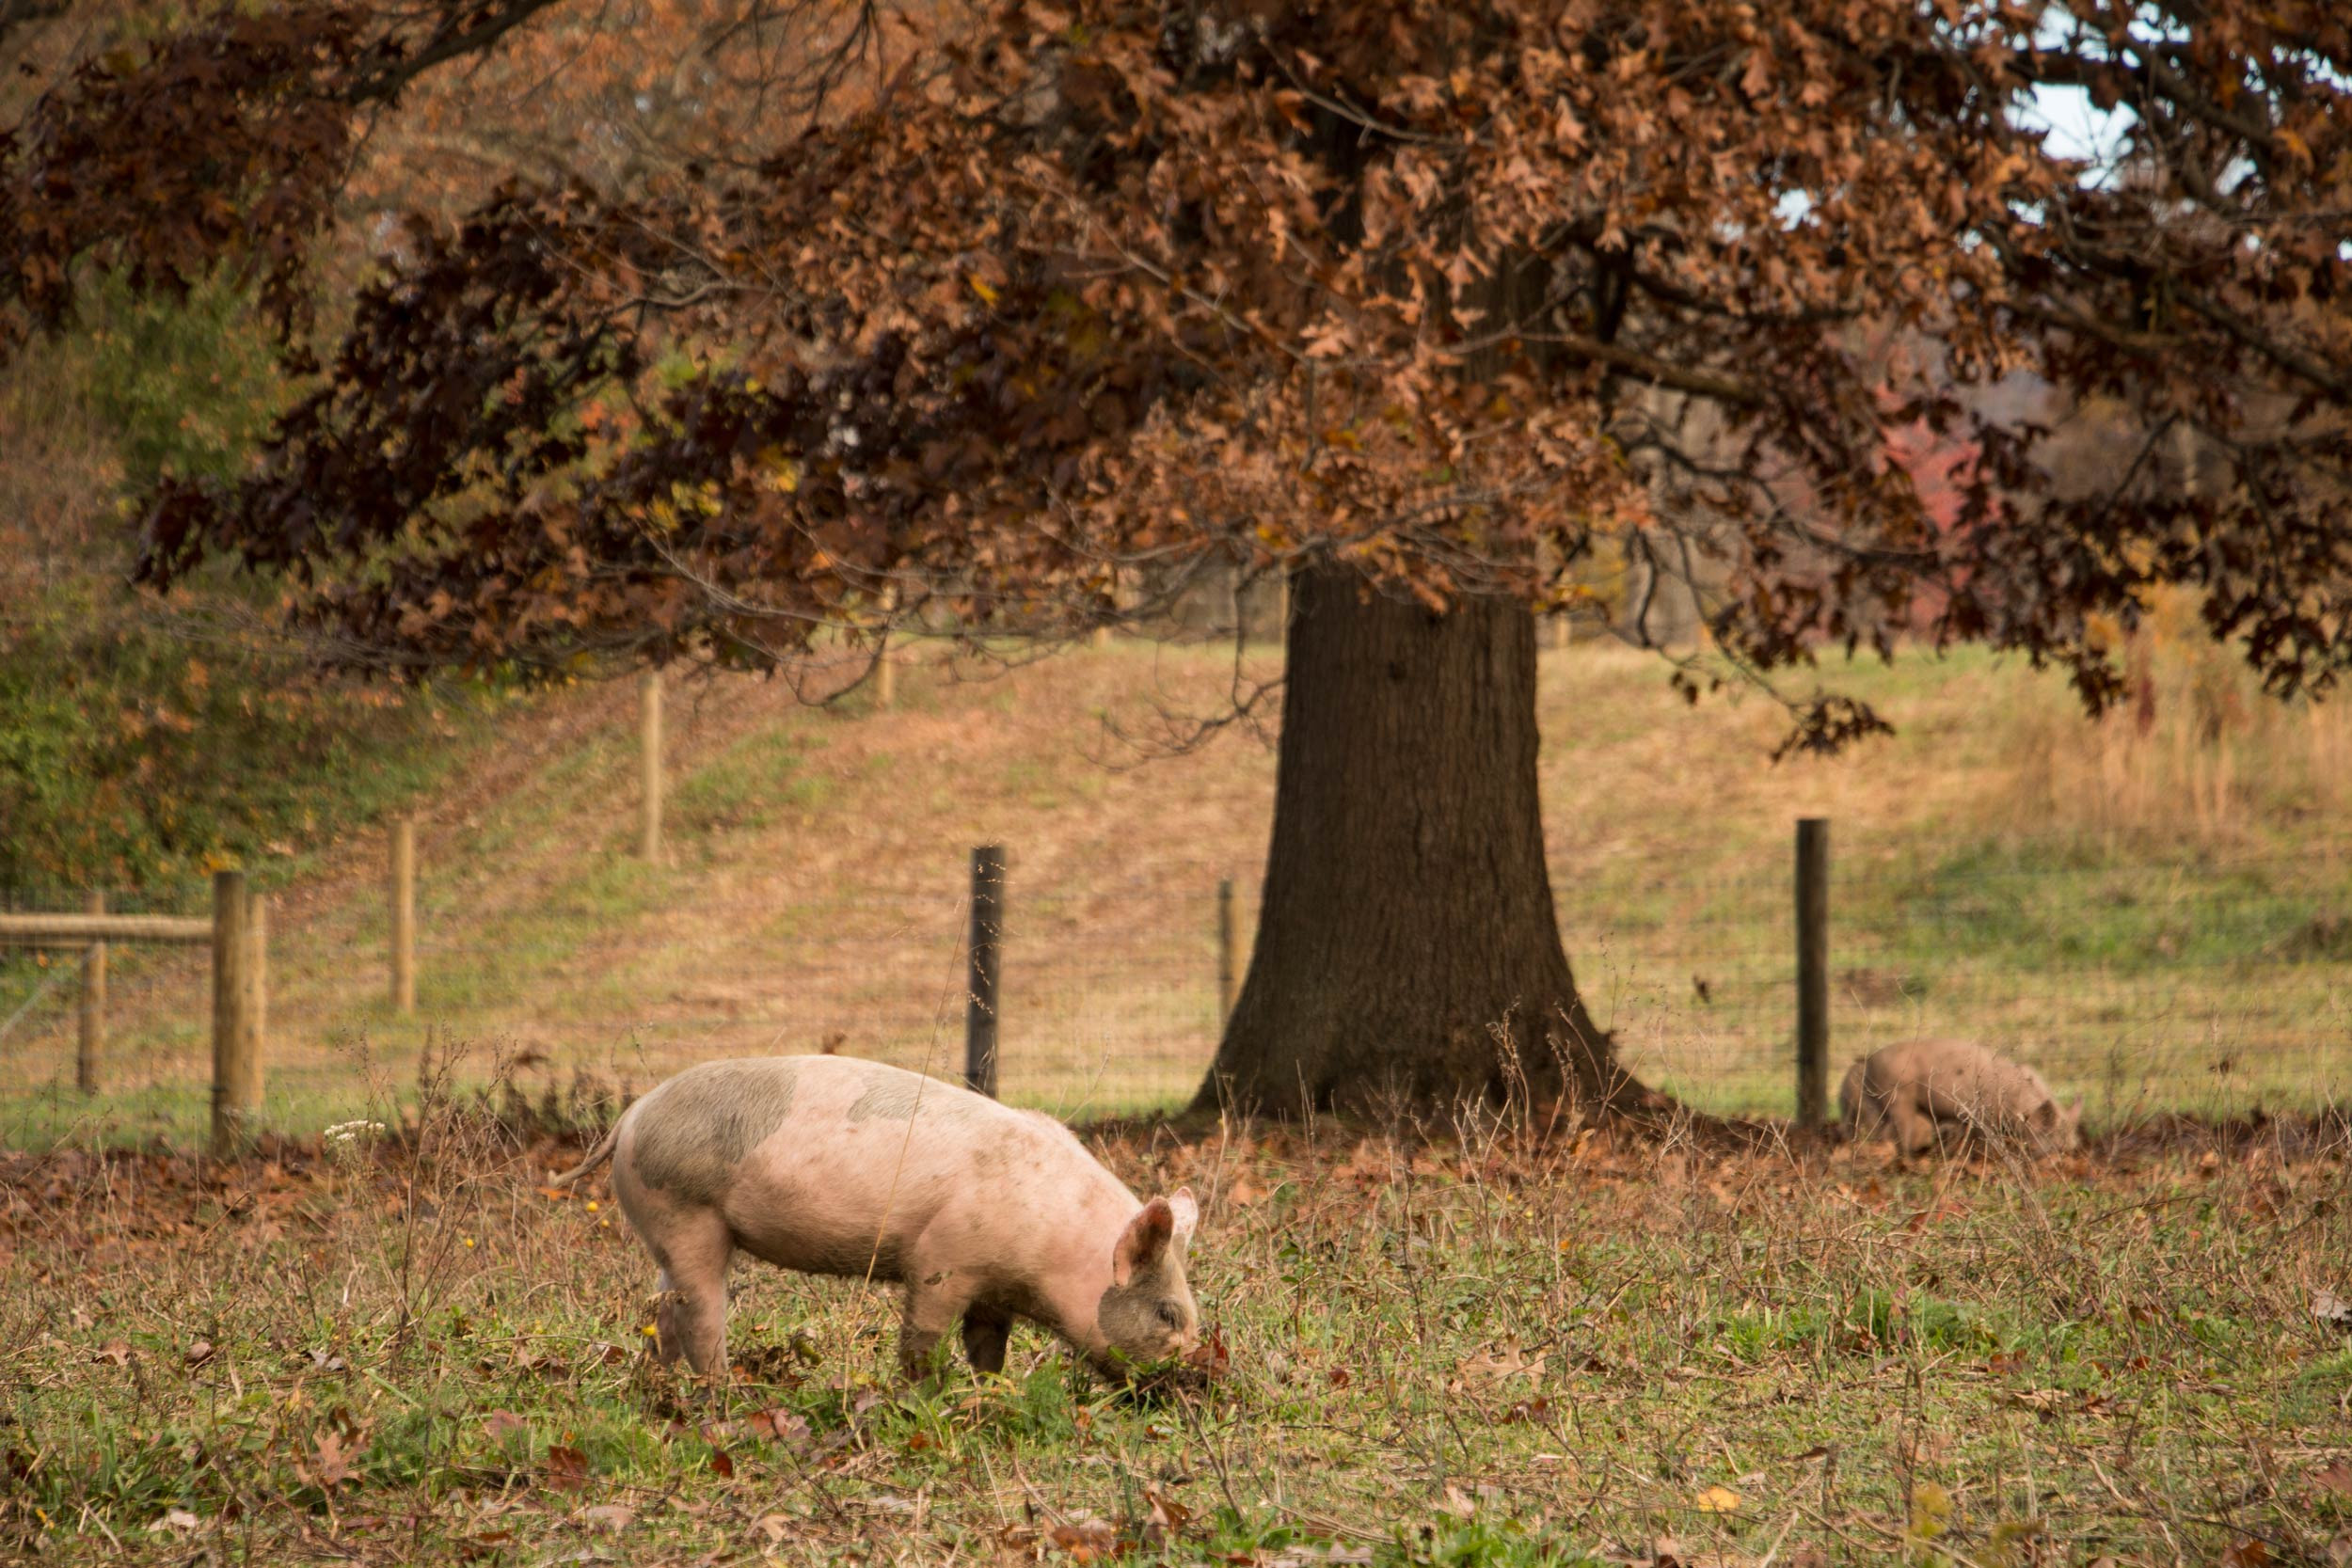 Our woodland and pastured raised pigs enjoy digging for acorns in the fall!